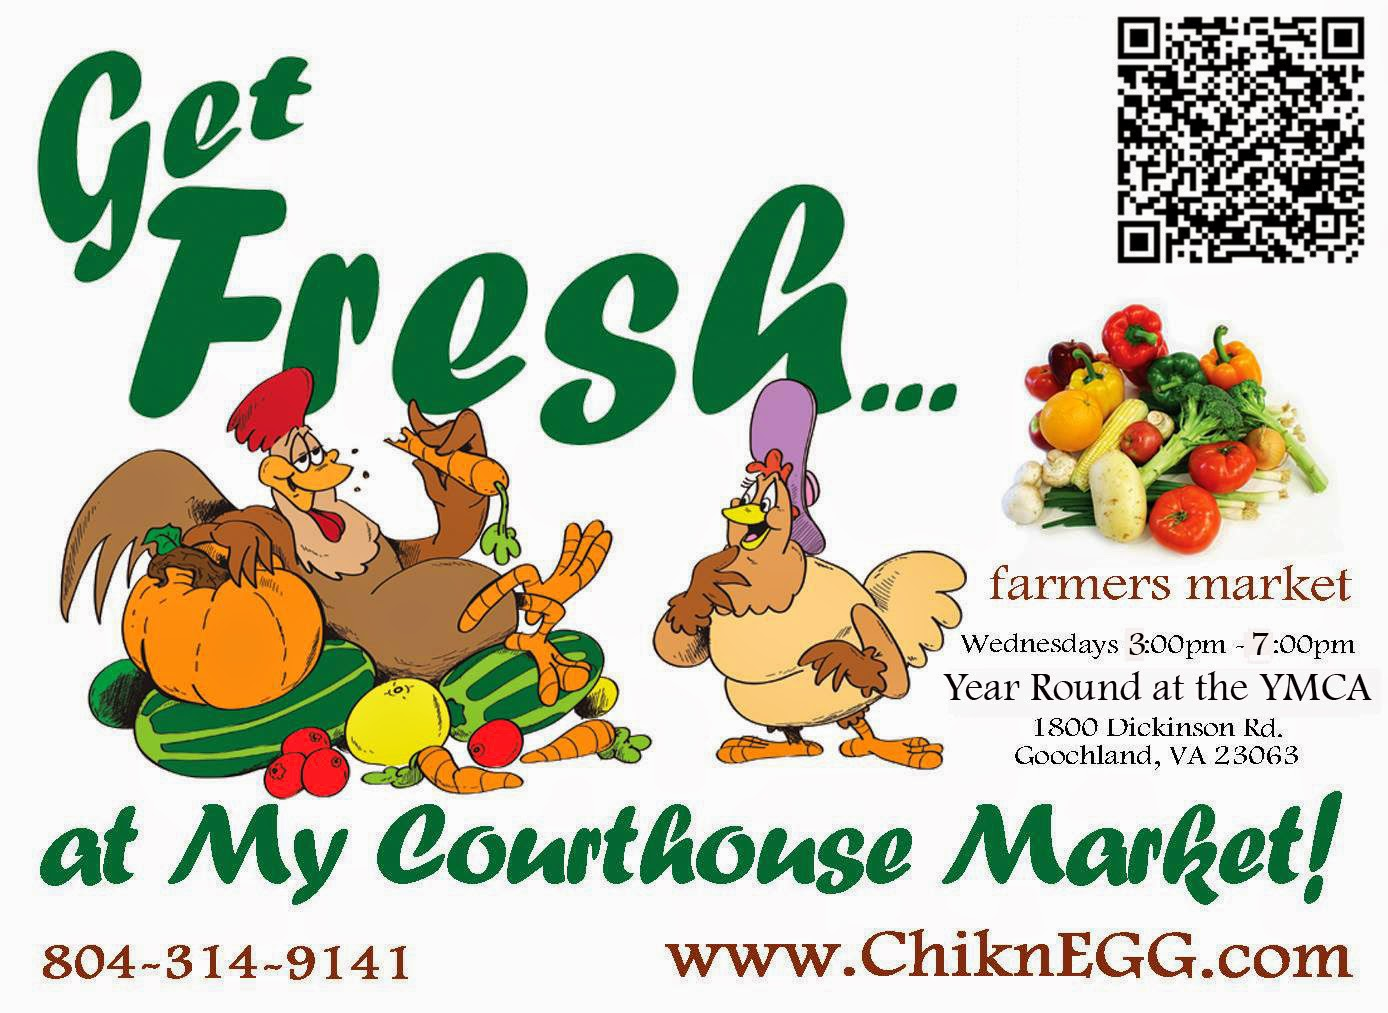 ChiknEGG's My Courthouse Market is located at 1800 Dickinson Road in Goochland, VA